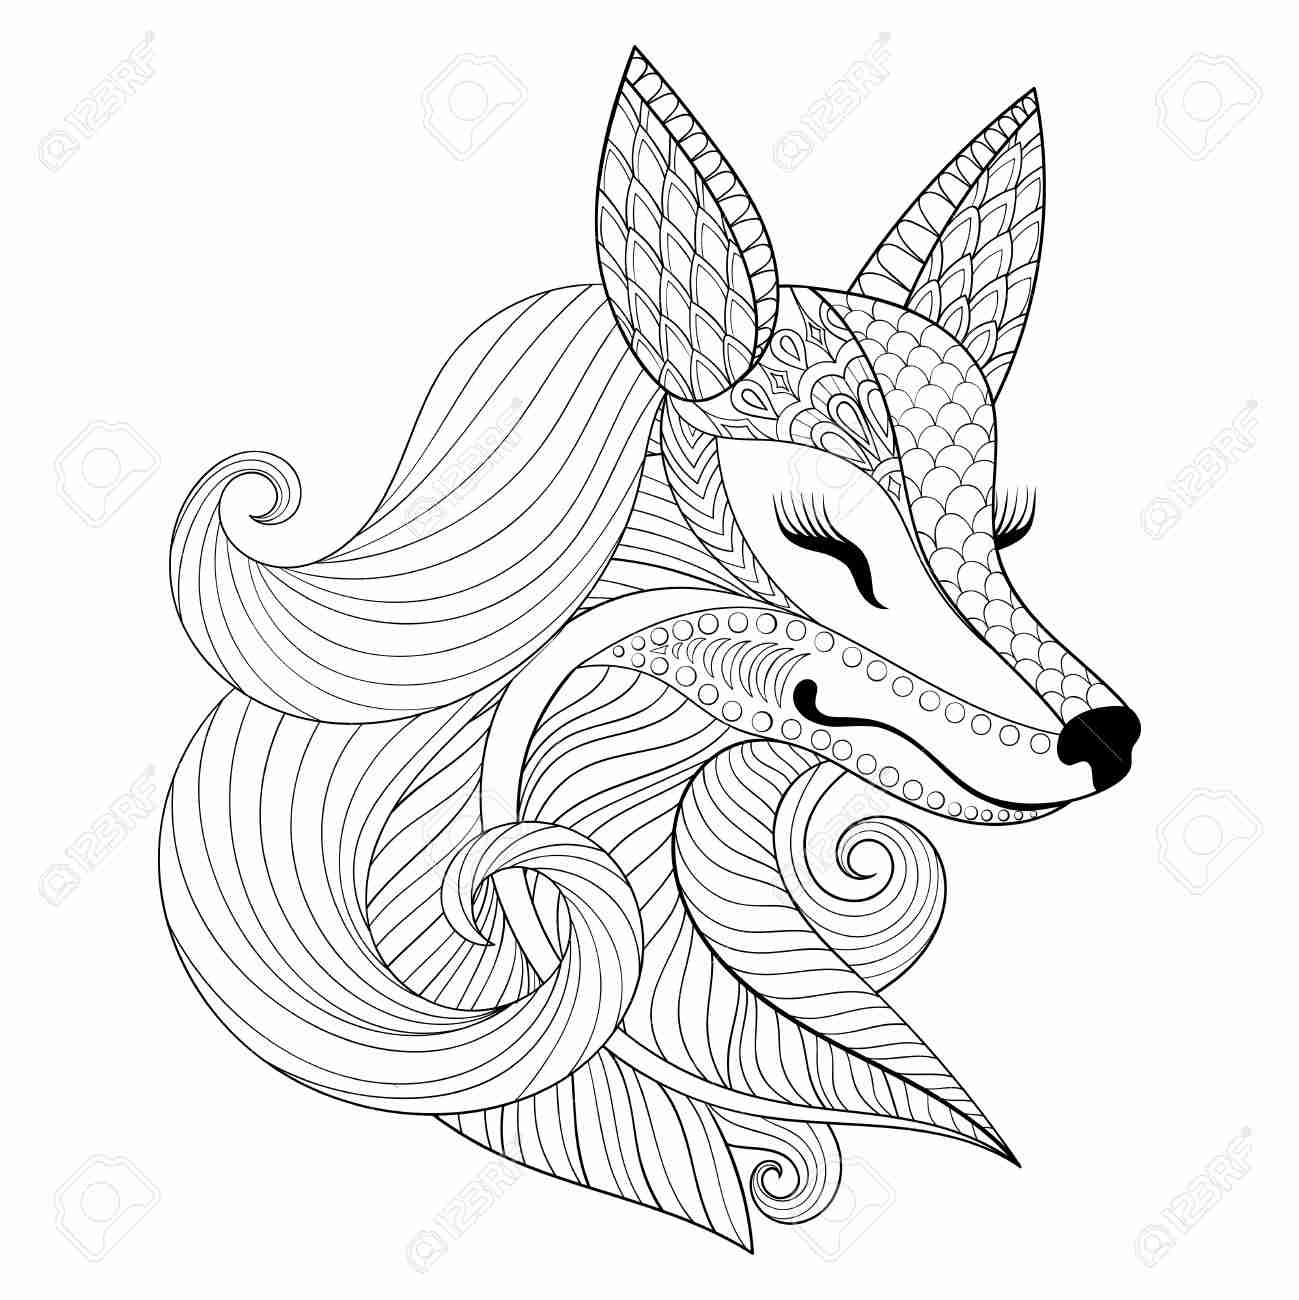 1299x1300 Fox Foxes Coloring Pages For Adults Justcolor Amazing Adult